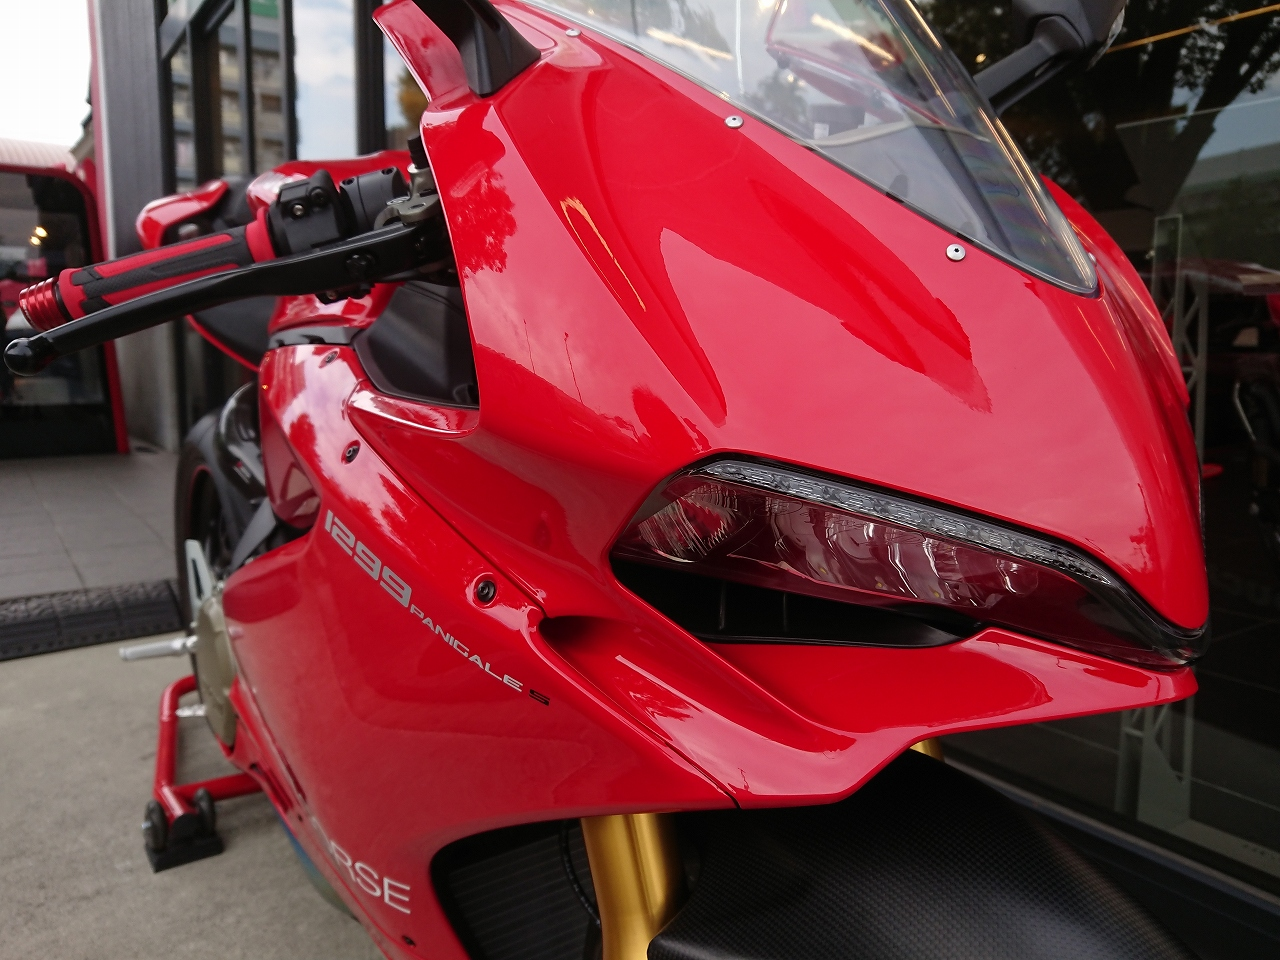 USED 1299 PANIGALE S